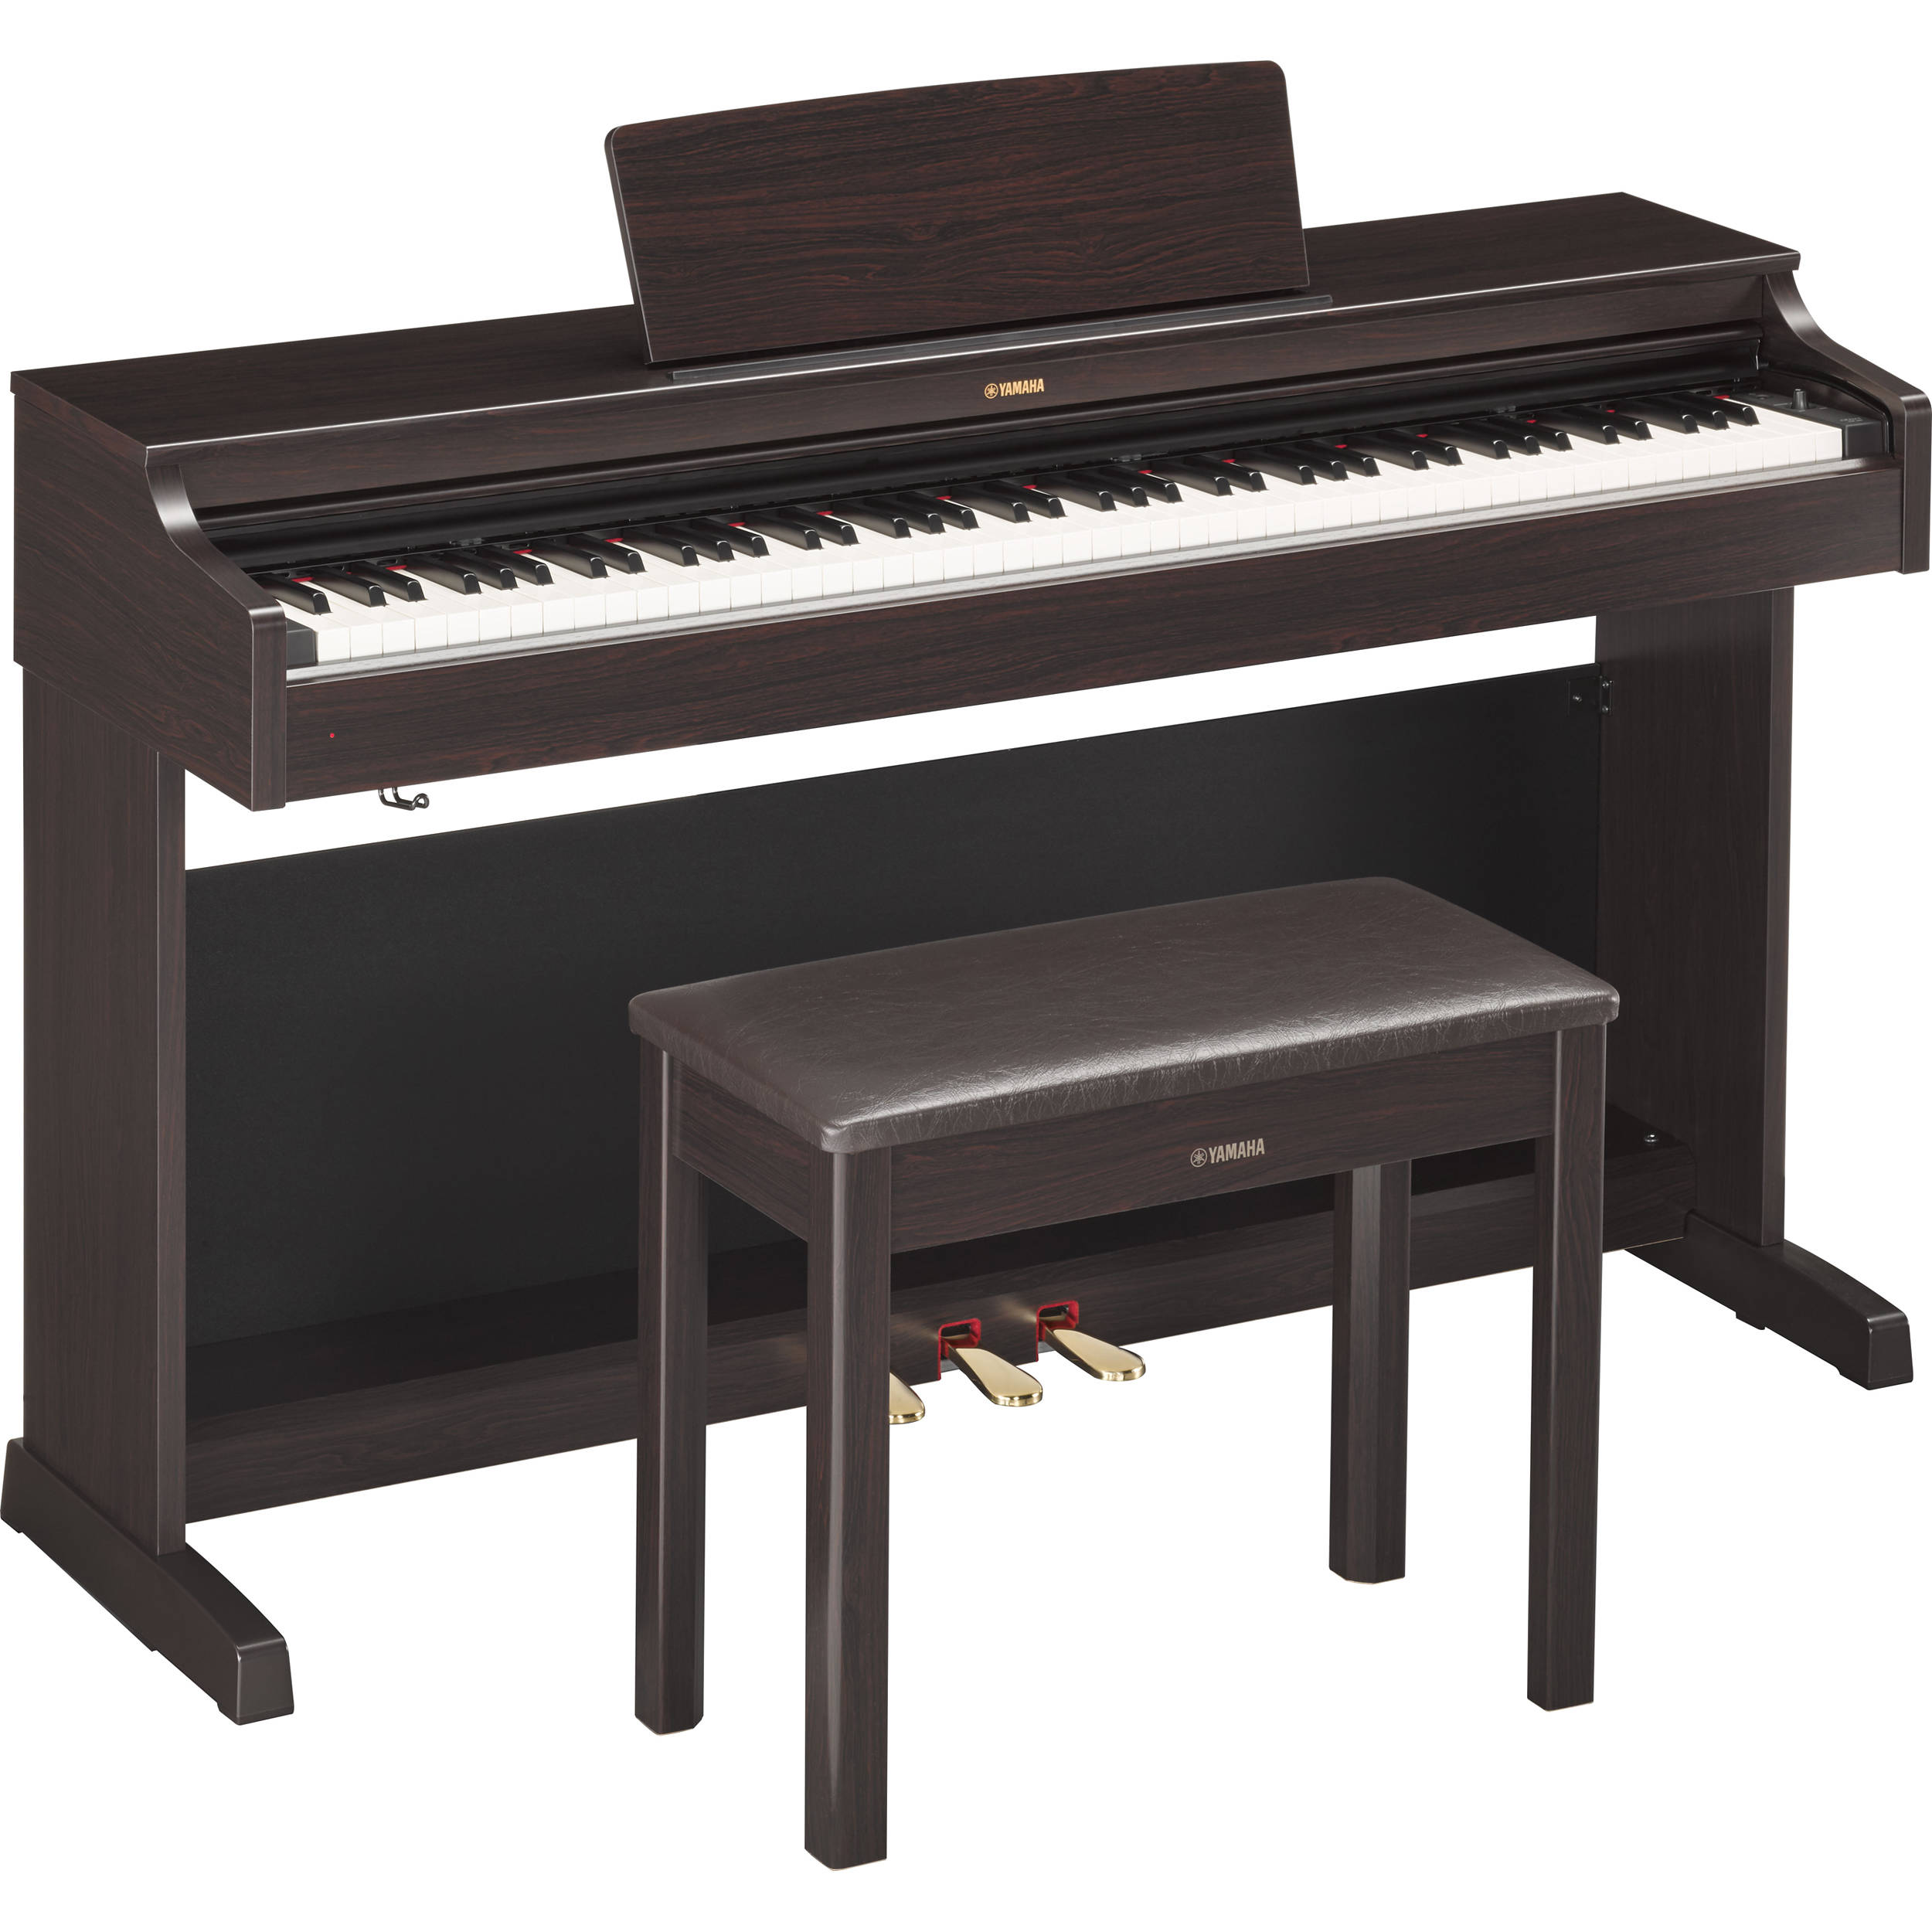 yamaha arius ydp 163r digital piano with bench ydp163r b h